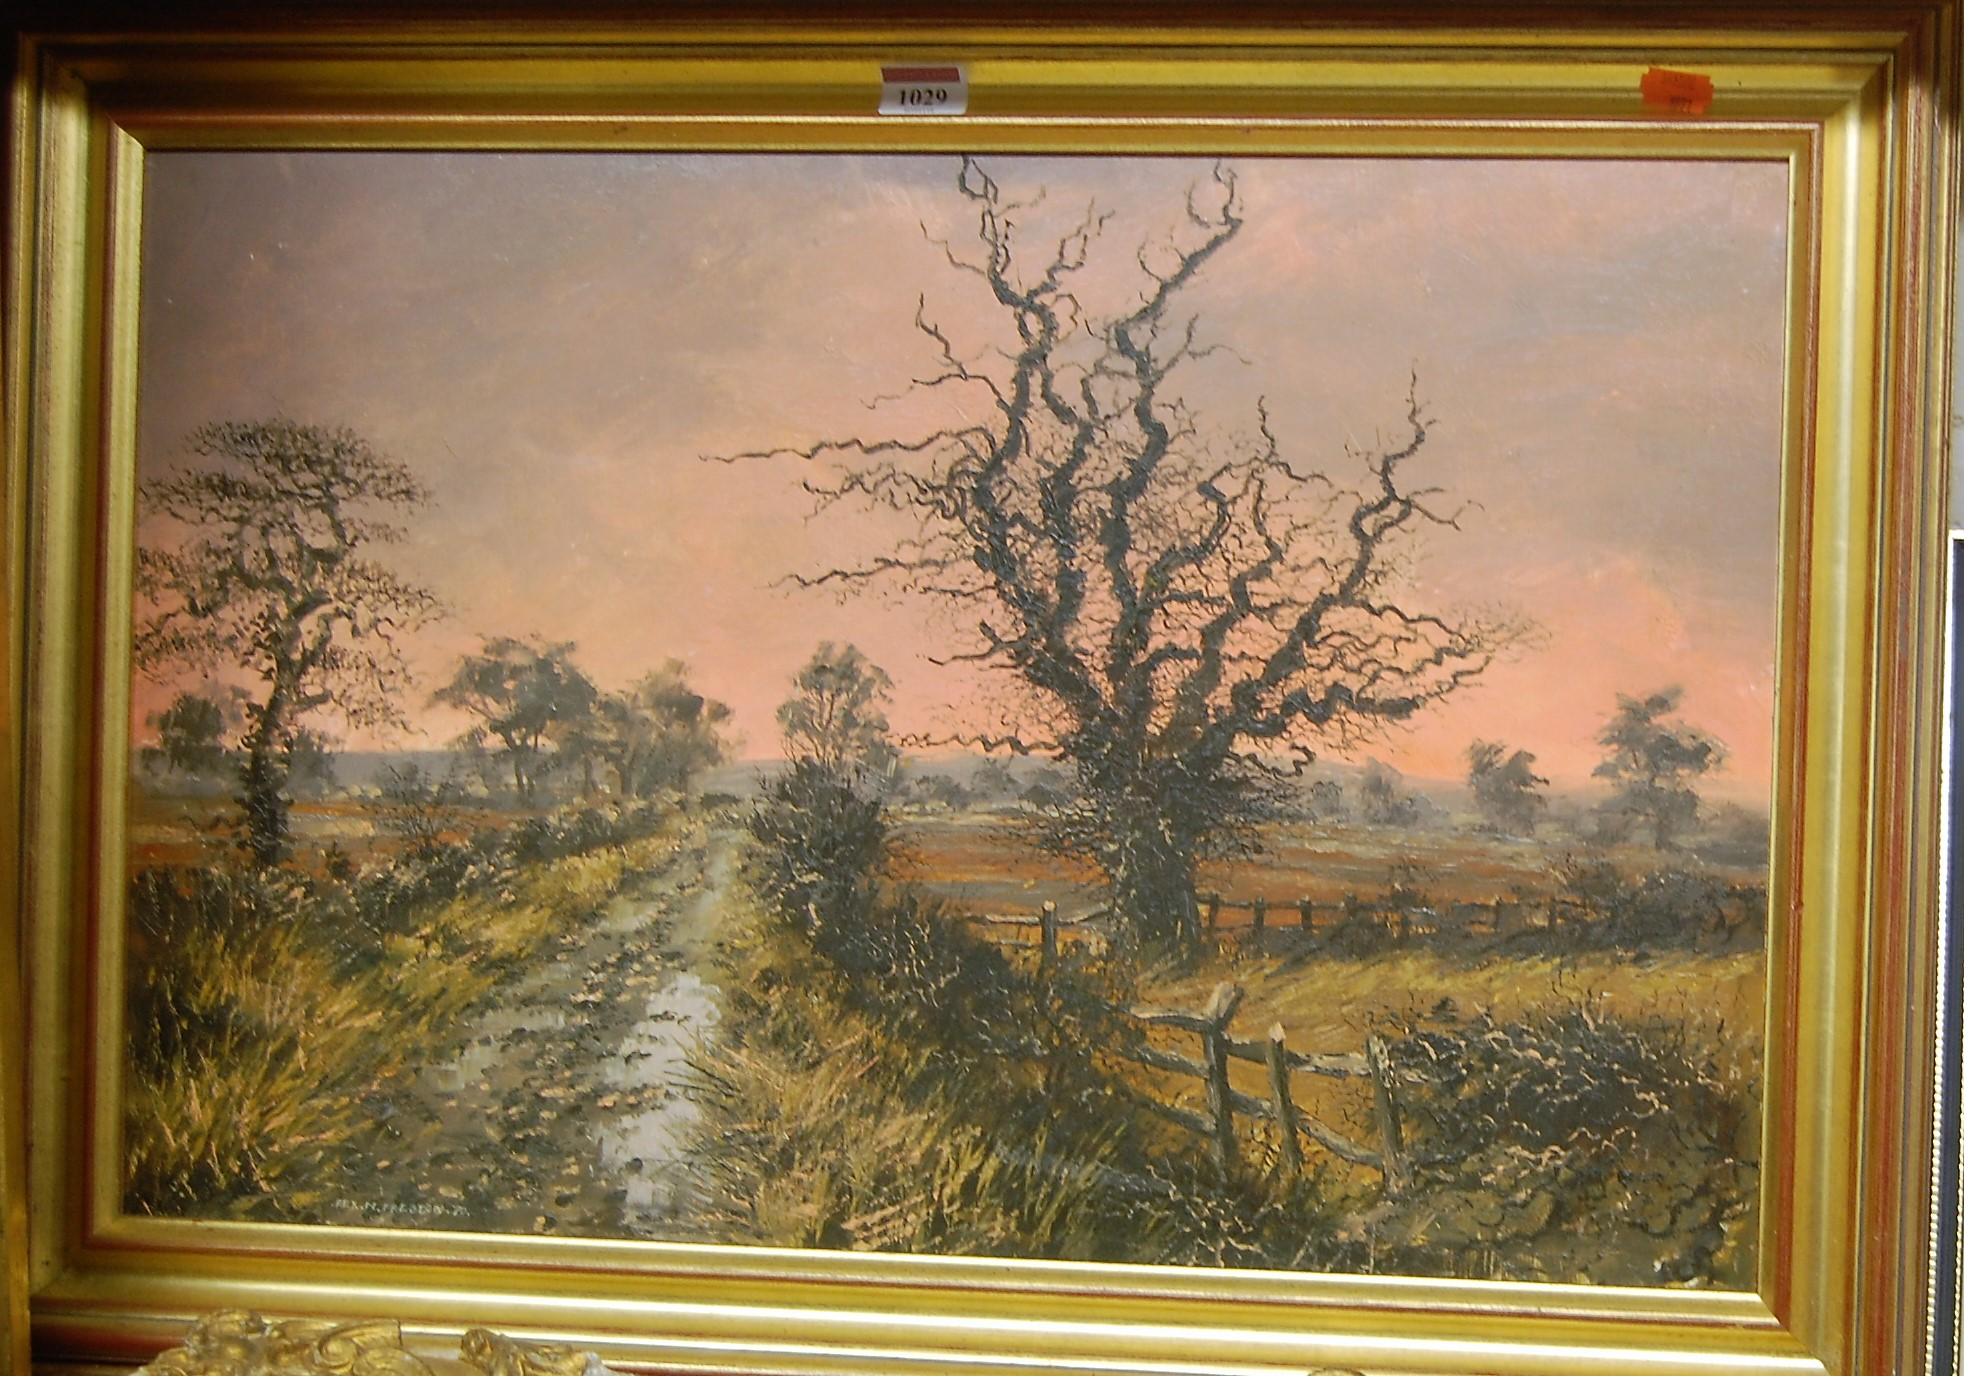 Lot 1029 - Rex N. Preston - Landscape at sunset, oil on board, signed and dated '70 lower left, 38 x 59cm